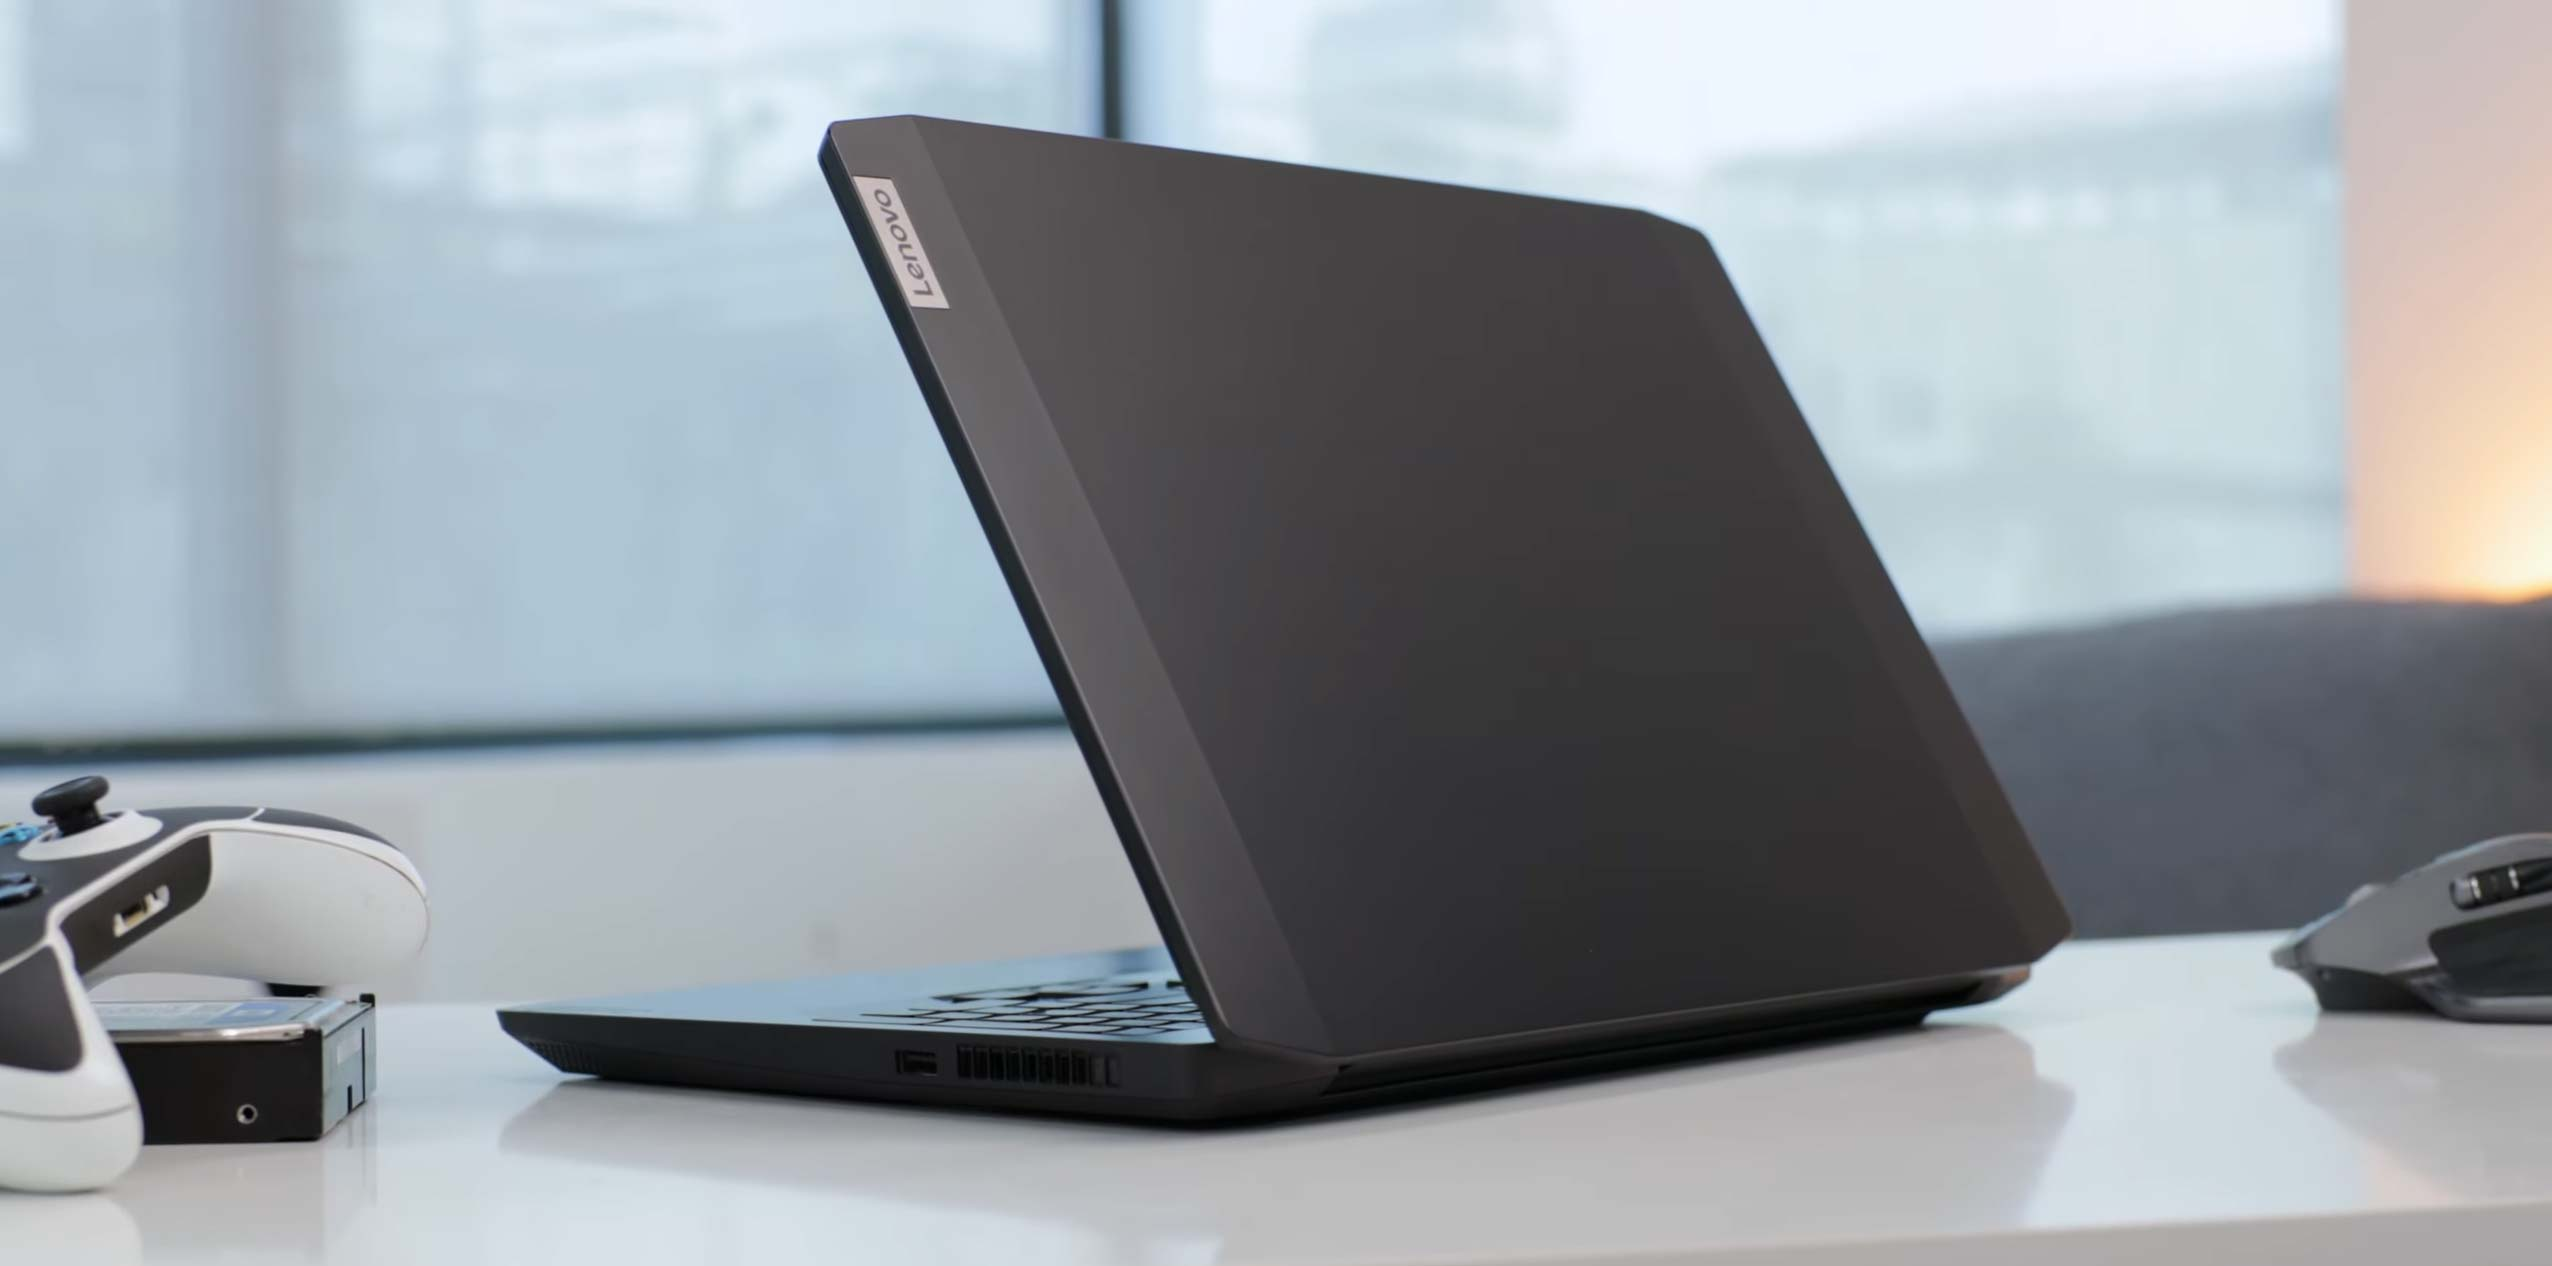 Lenovo Ideapad Gaming 3 - Was it worthy of being the successor to the L340?